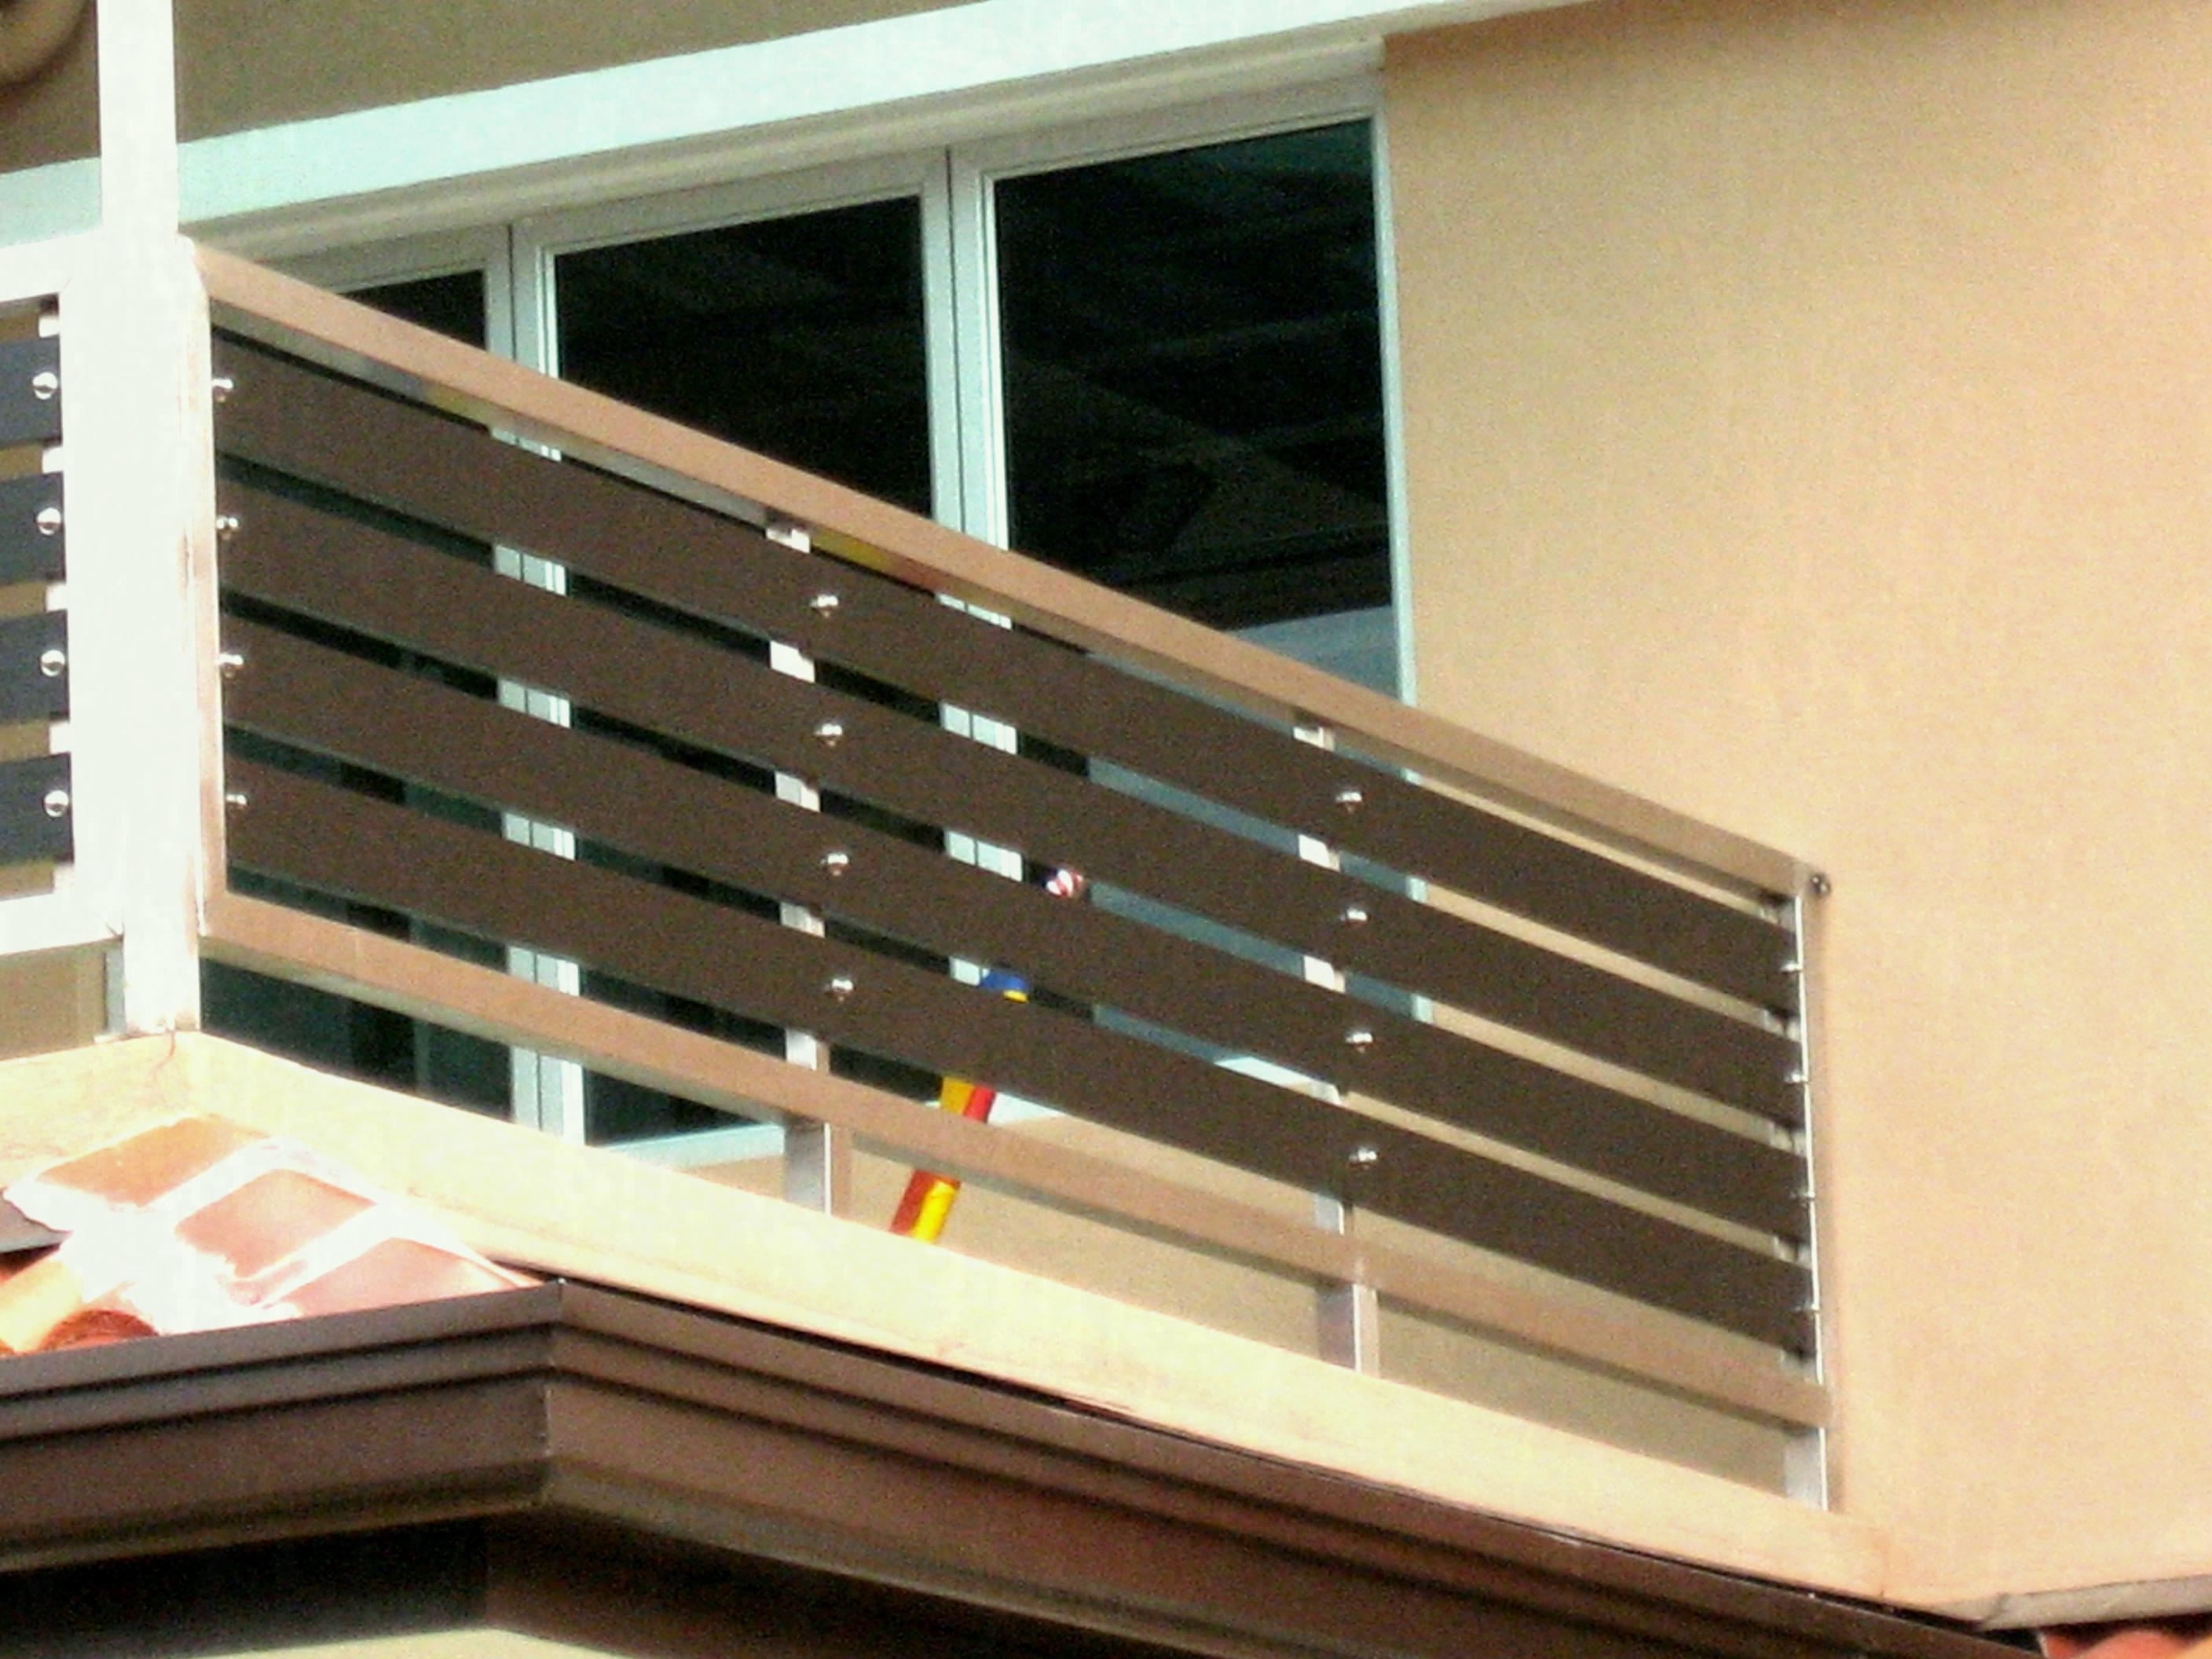 Captivating Balcony Grill Design Of Designs Homes Image Of Picture Simple Tips Acnn Decor